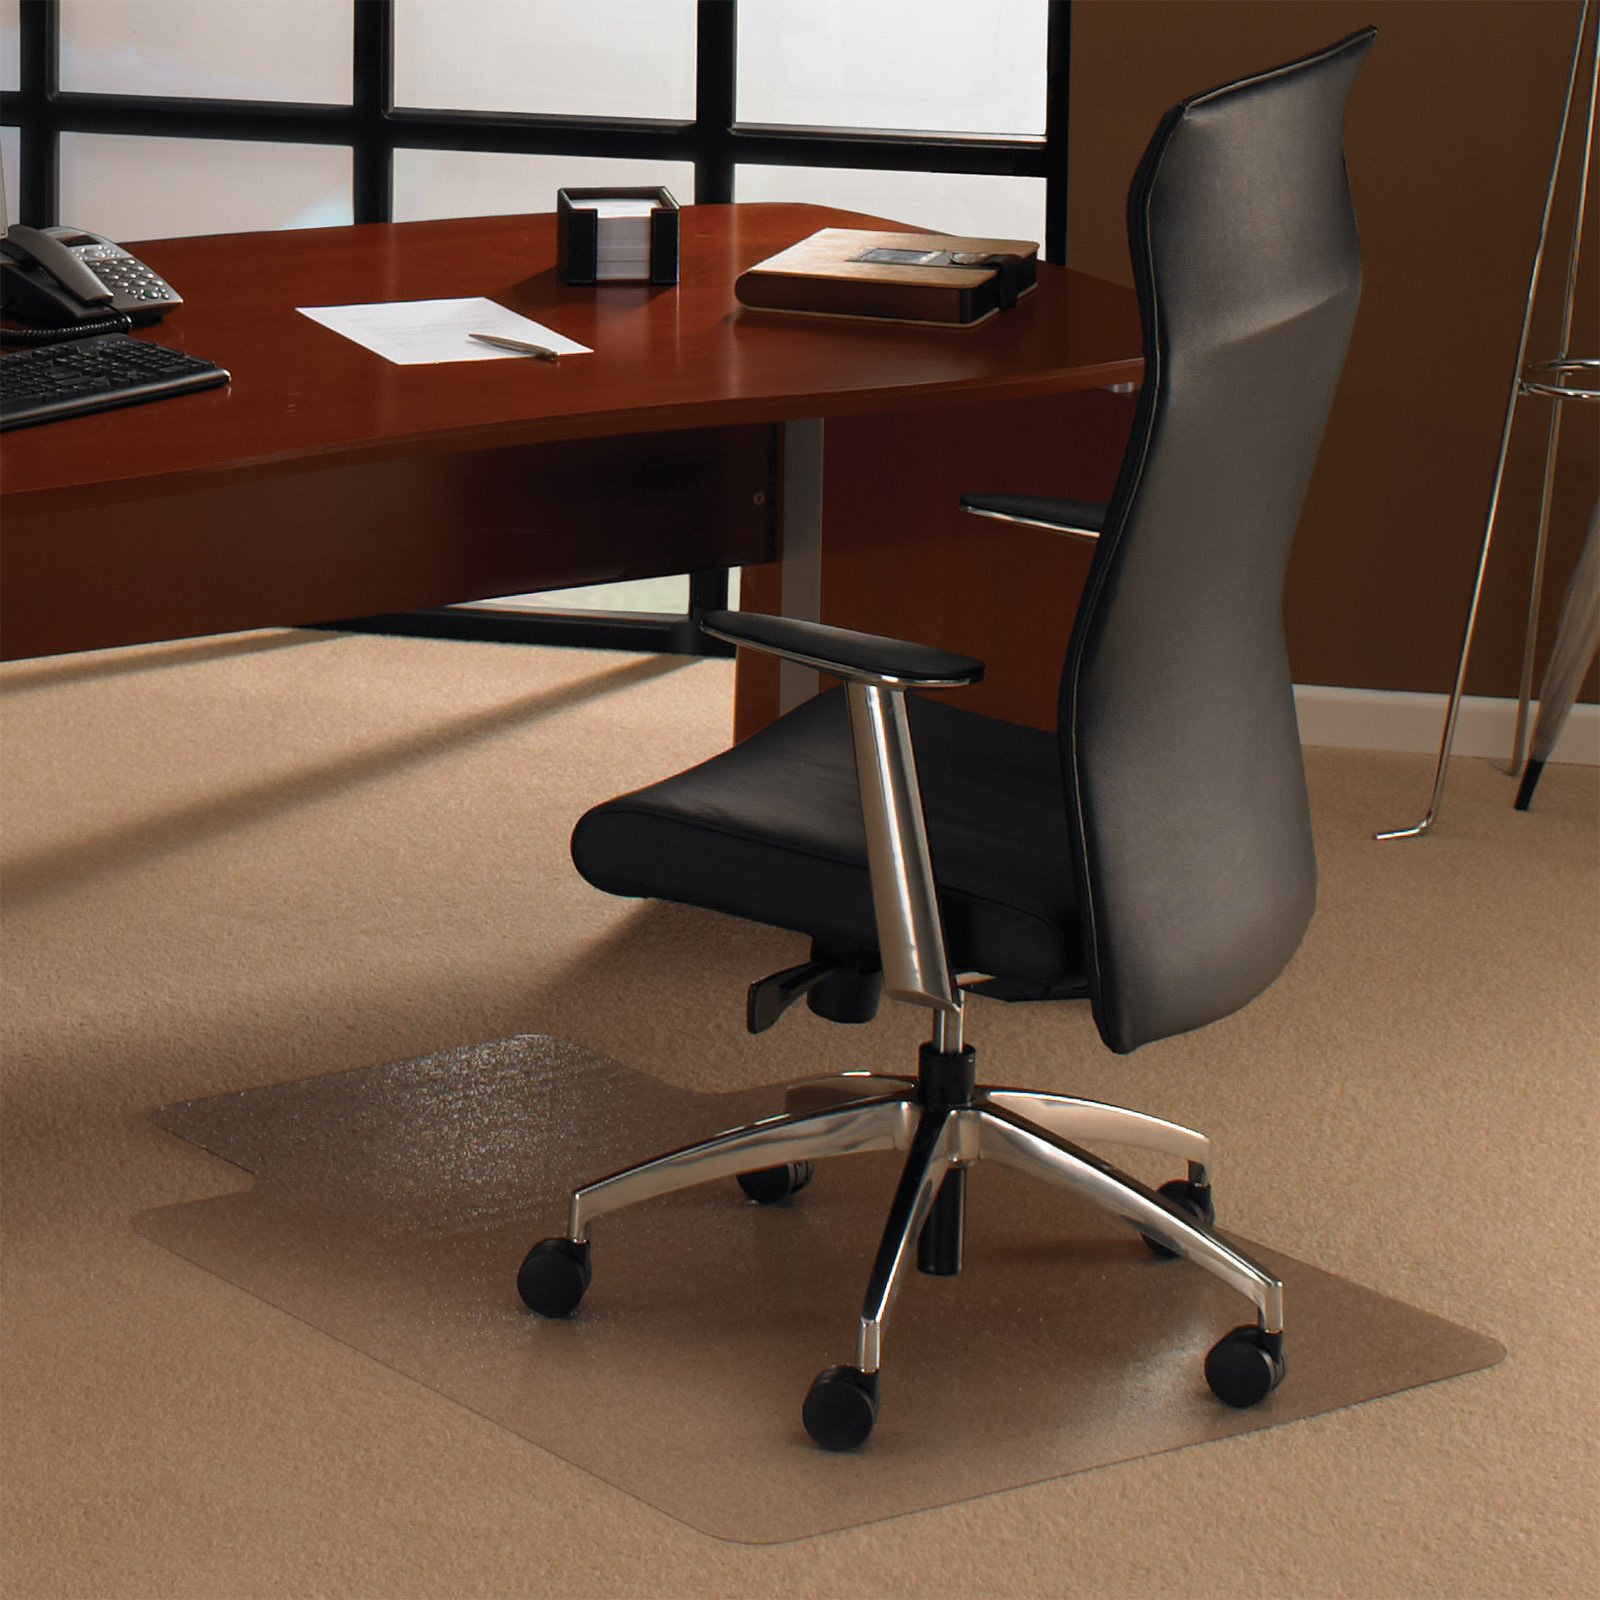 Floortex Ecotex Revolutionmat Rectangular Chair Mat with Lip for Carpet